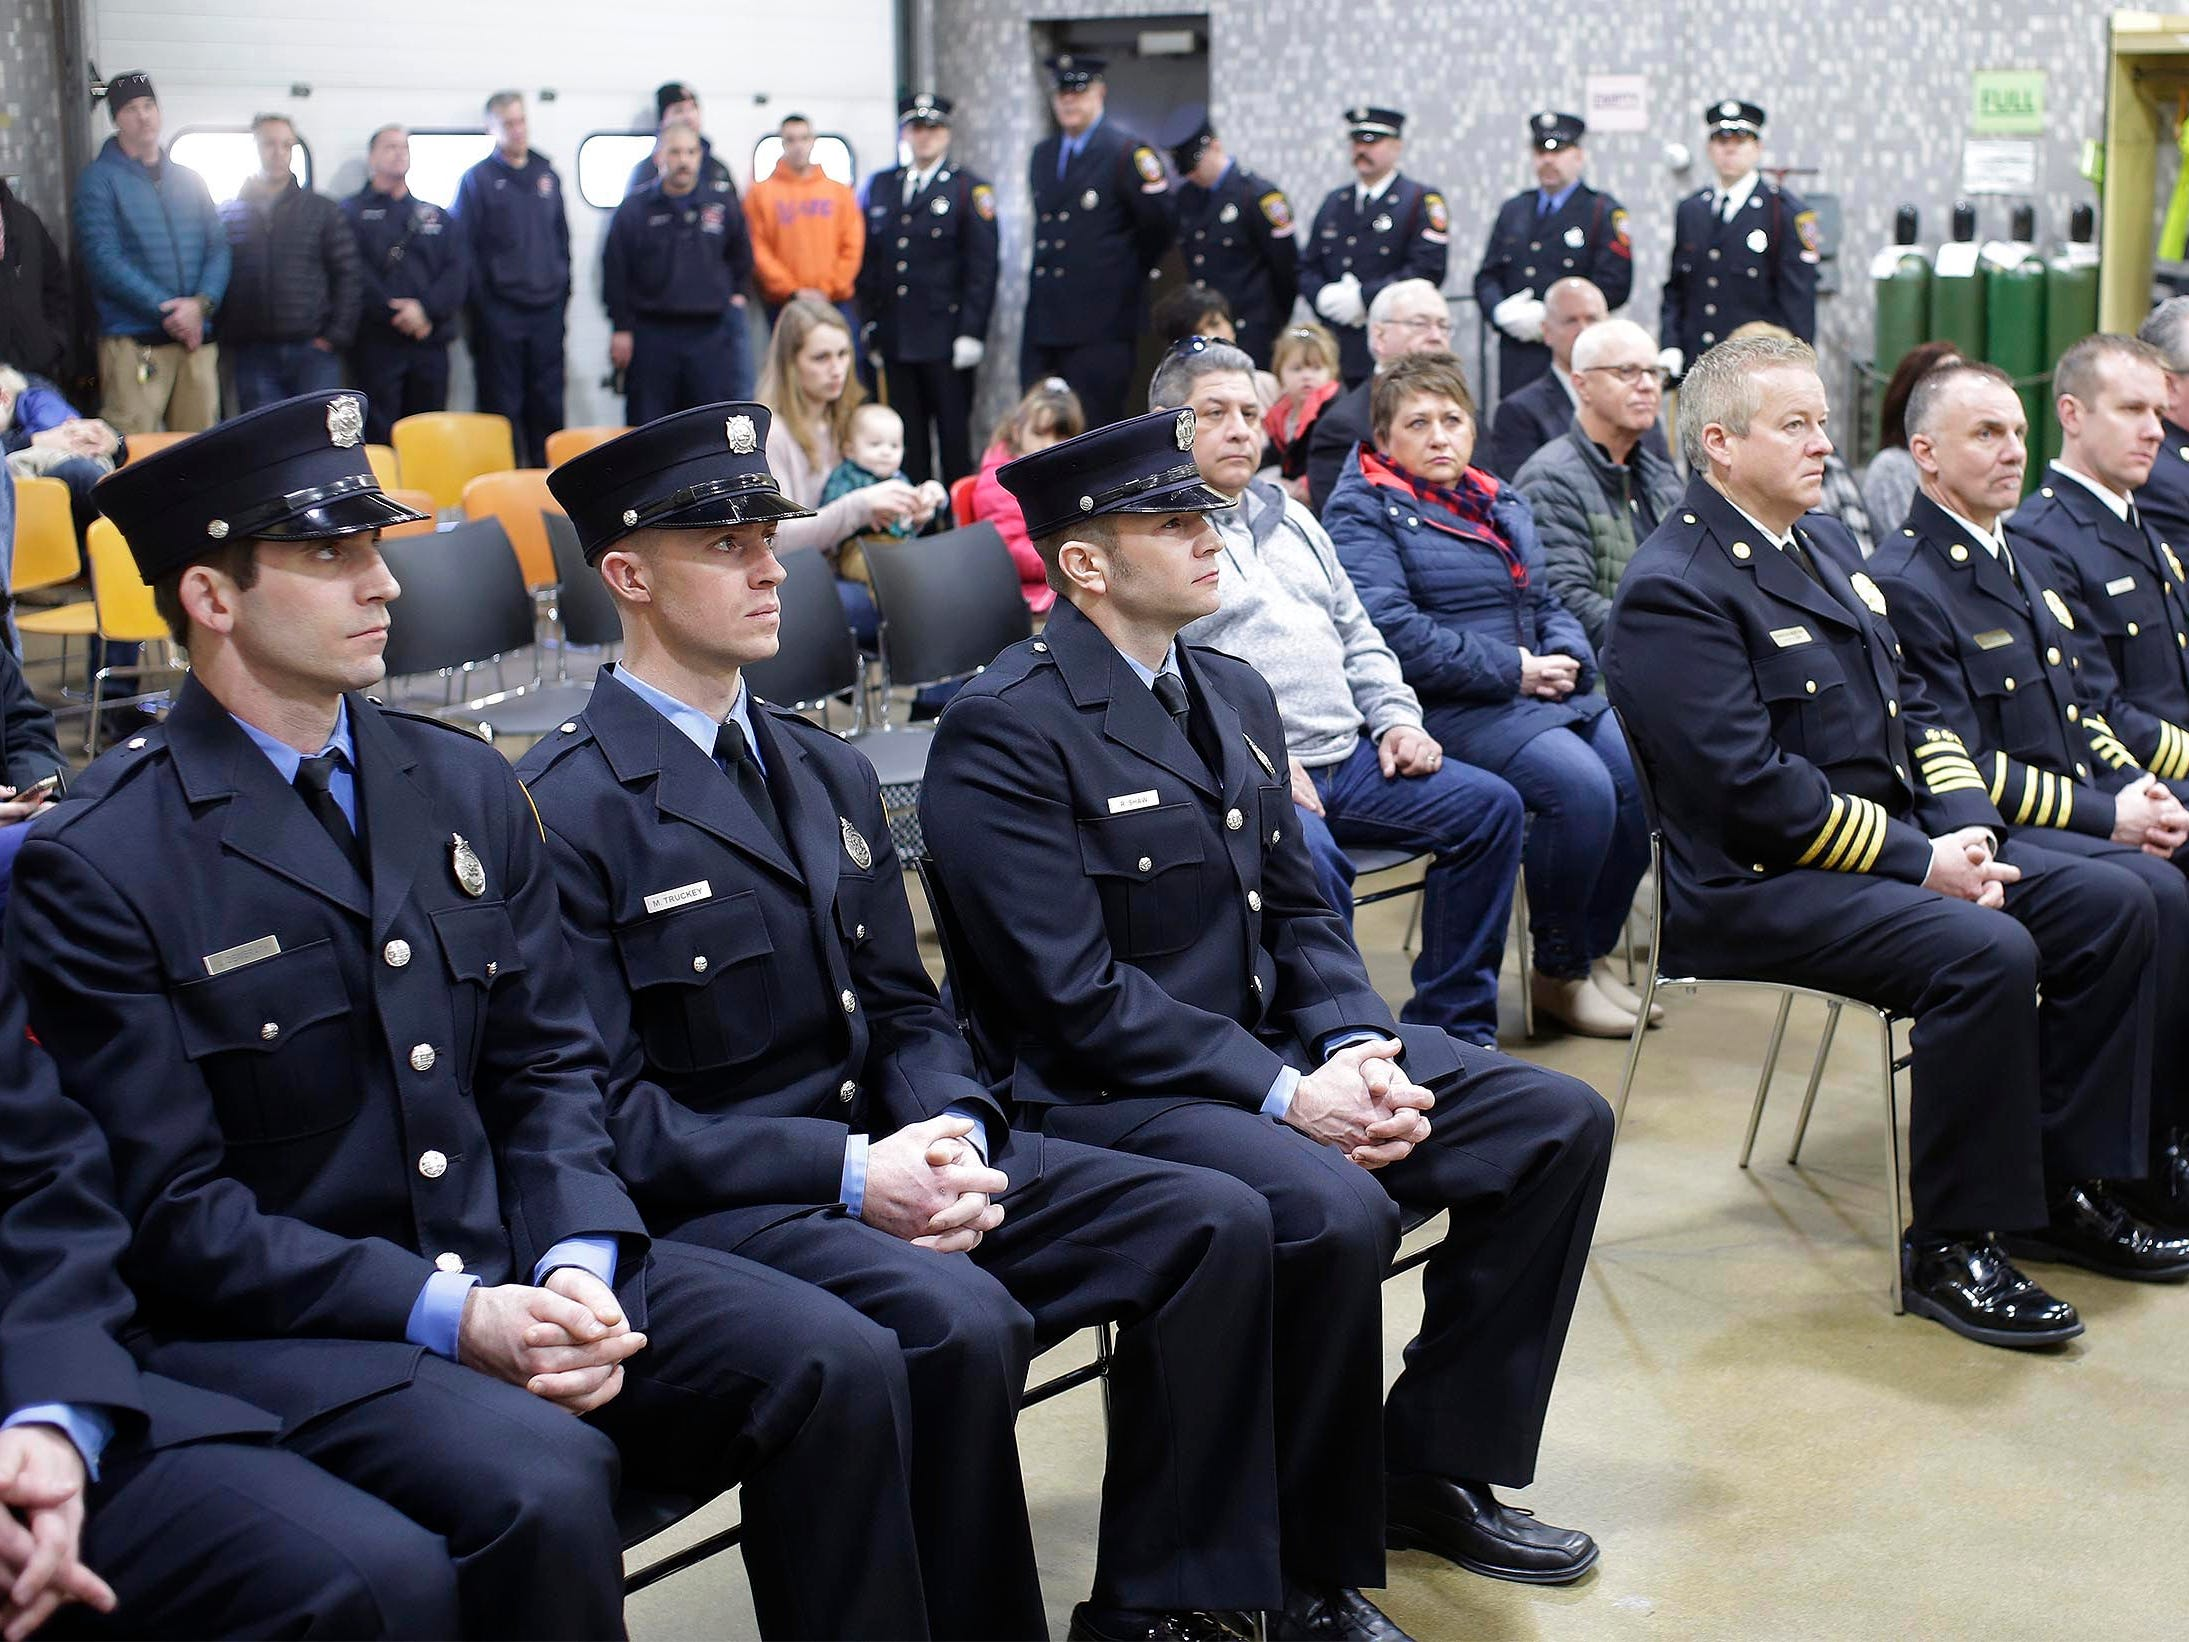 The crowd at the award ceremony at the Sheboygan Fire Department's Station 3, Wednesday, February 21, 2019, in Sheboygan, Wis.